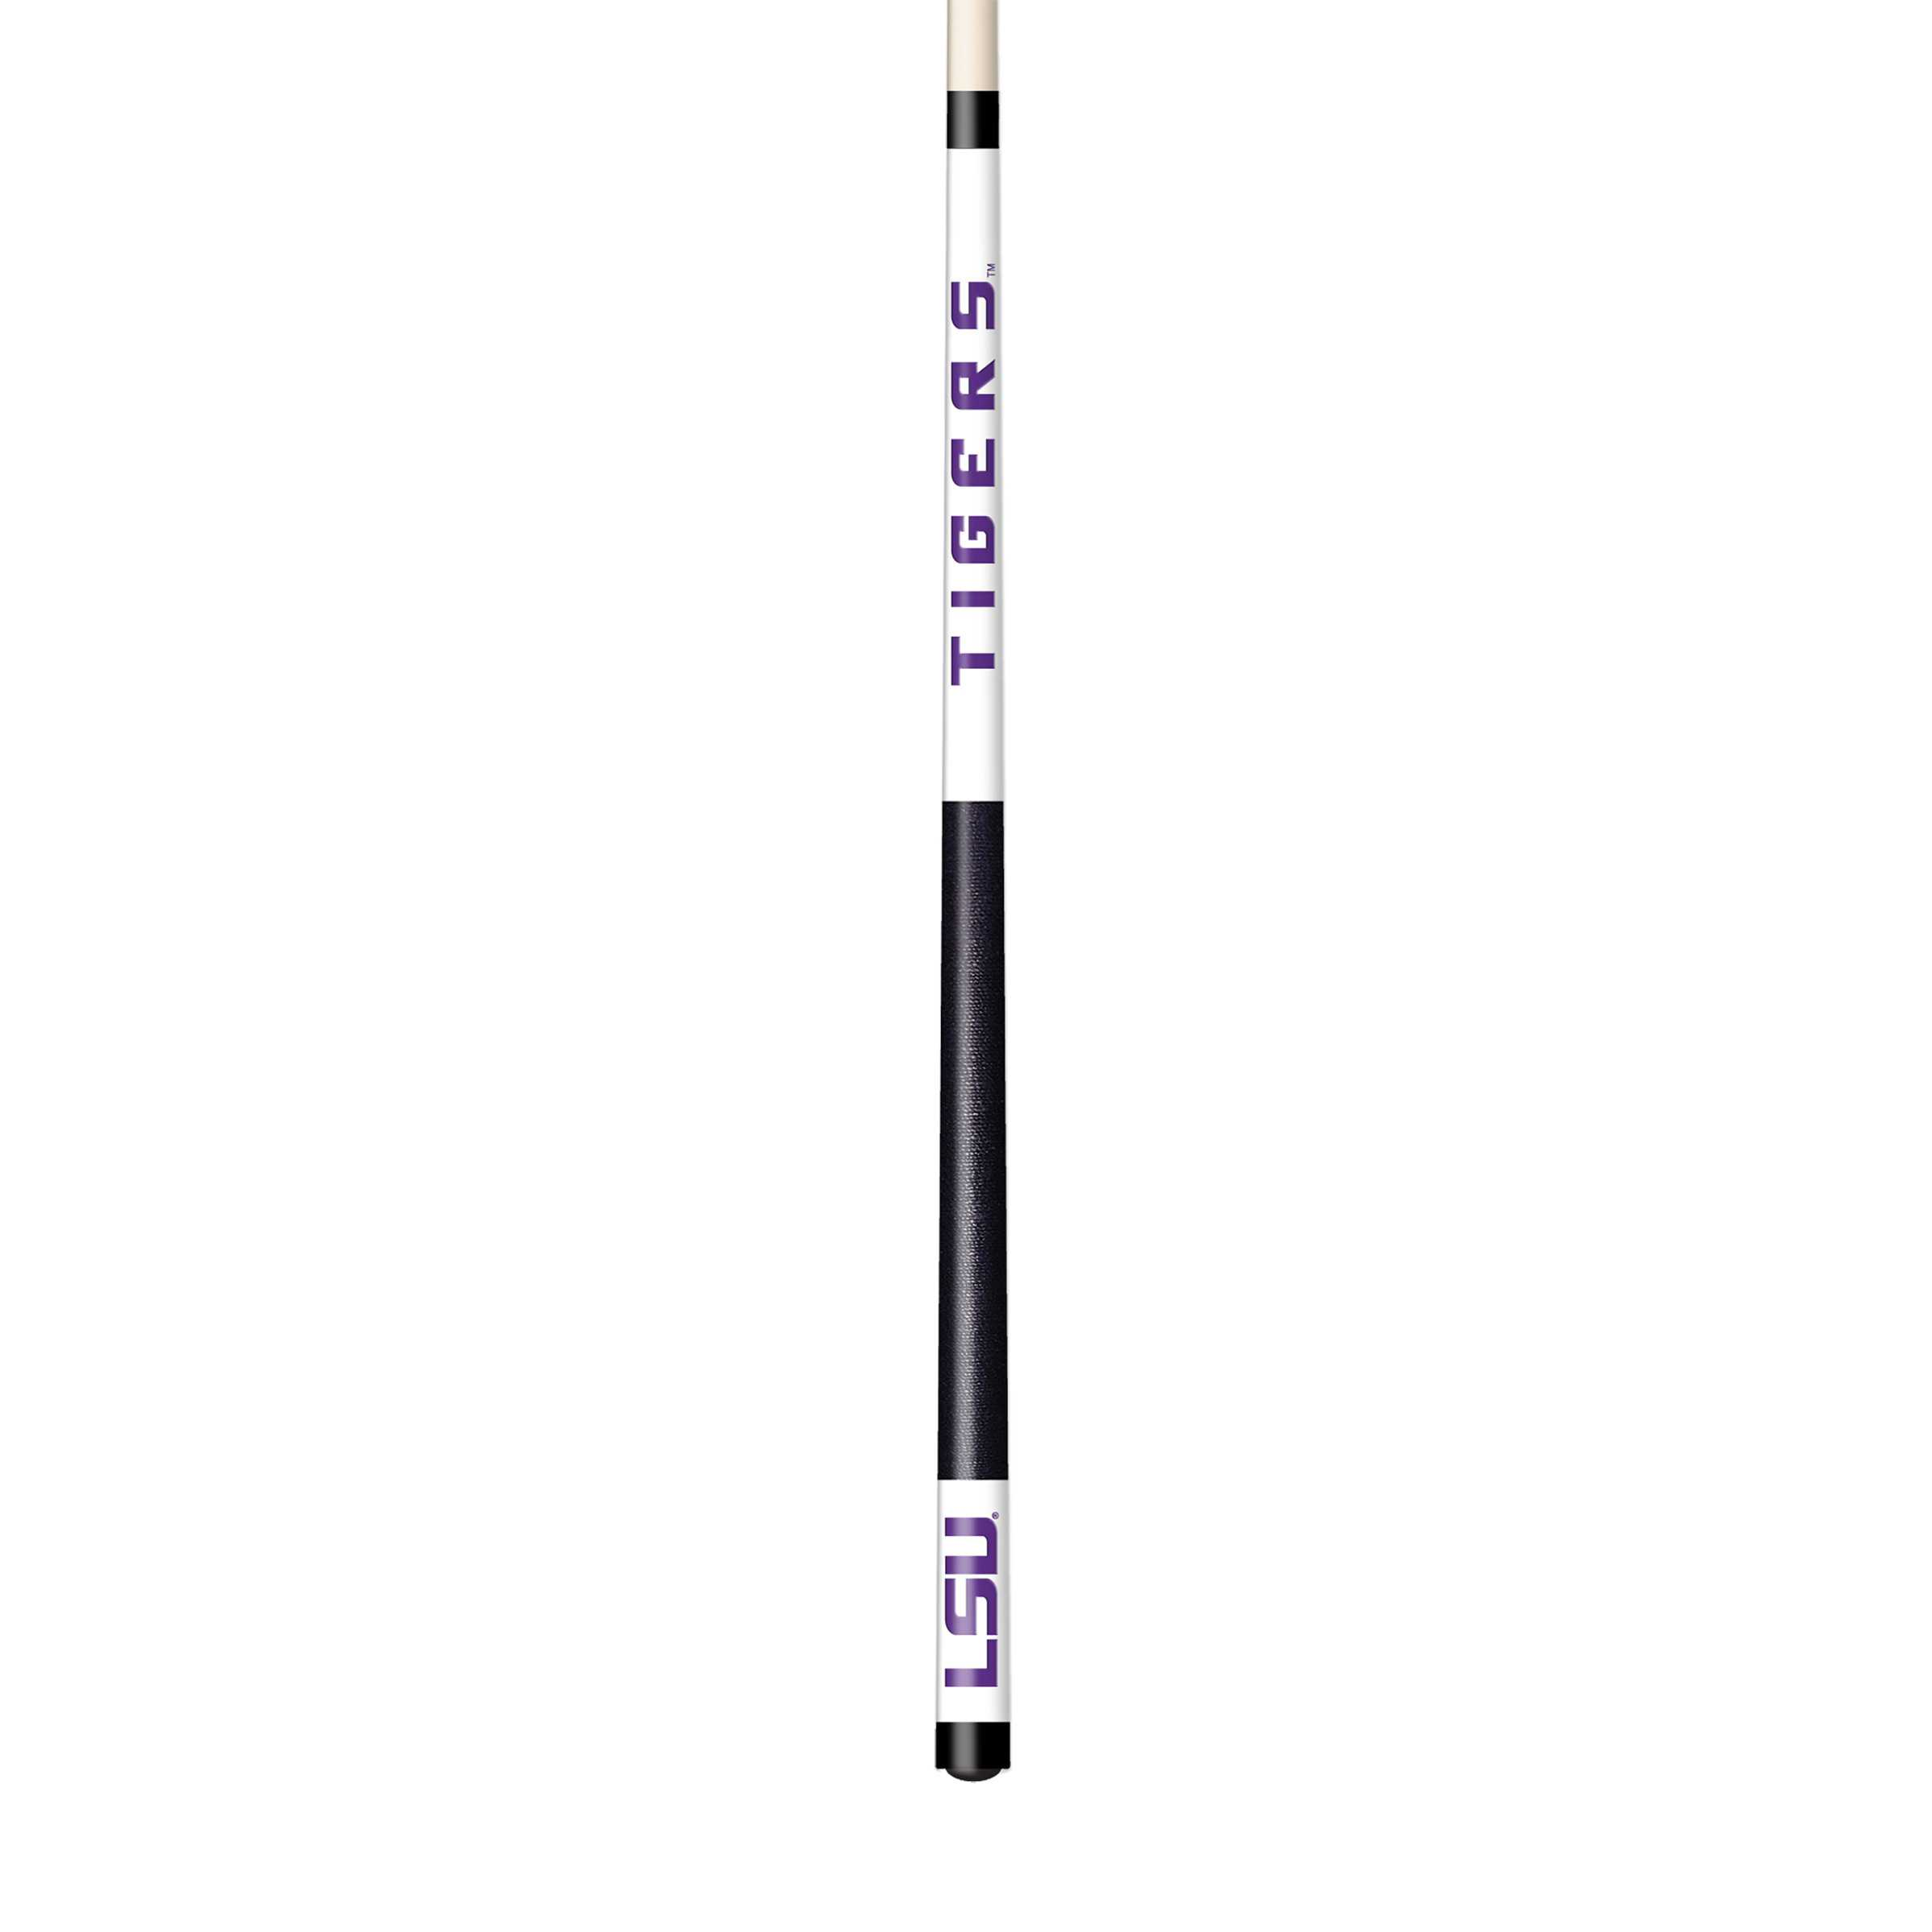 LOUISIANA STATE UNIVERSITY LASER ETCHED CUES